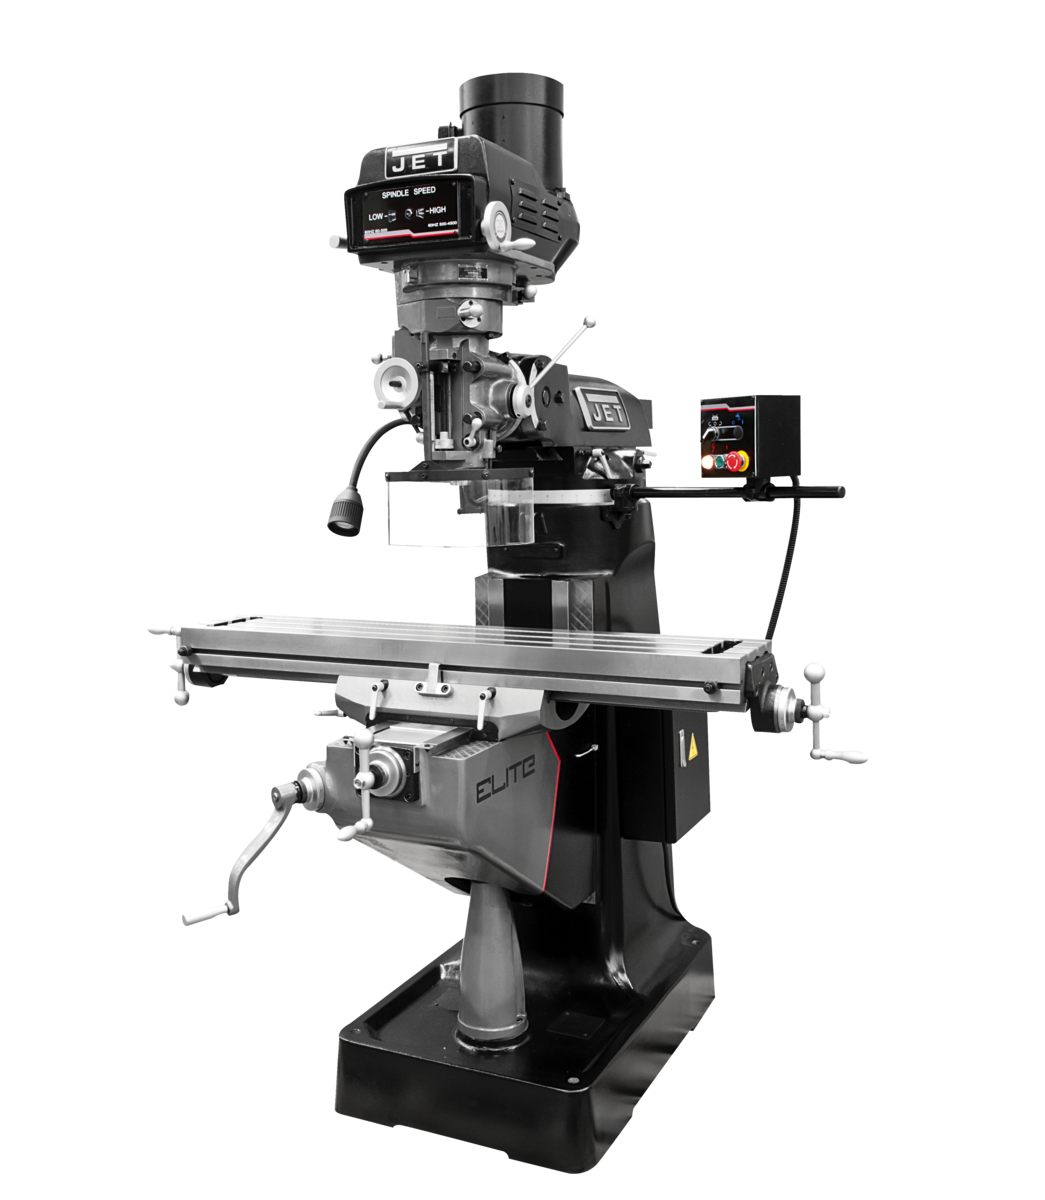 ETM-949 Mill with 3-Axis Newall DP700 (Knee) DRO and X, Y, Z-Axis JET Powerfeeds and USA Made Air Draw Bar